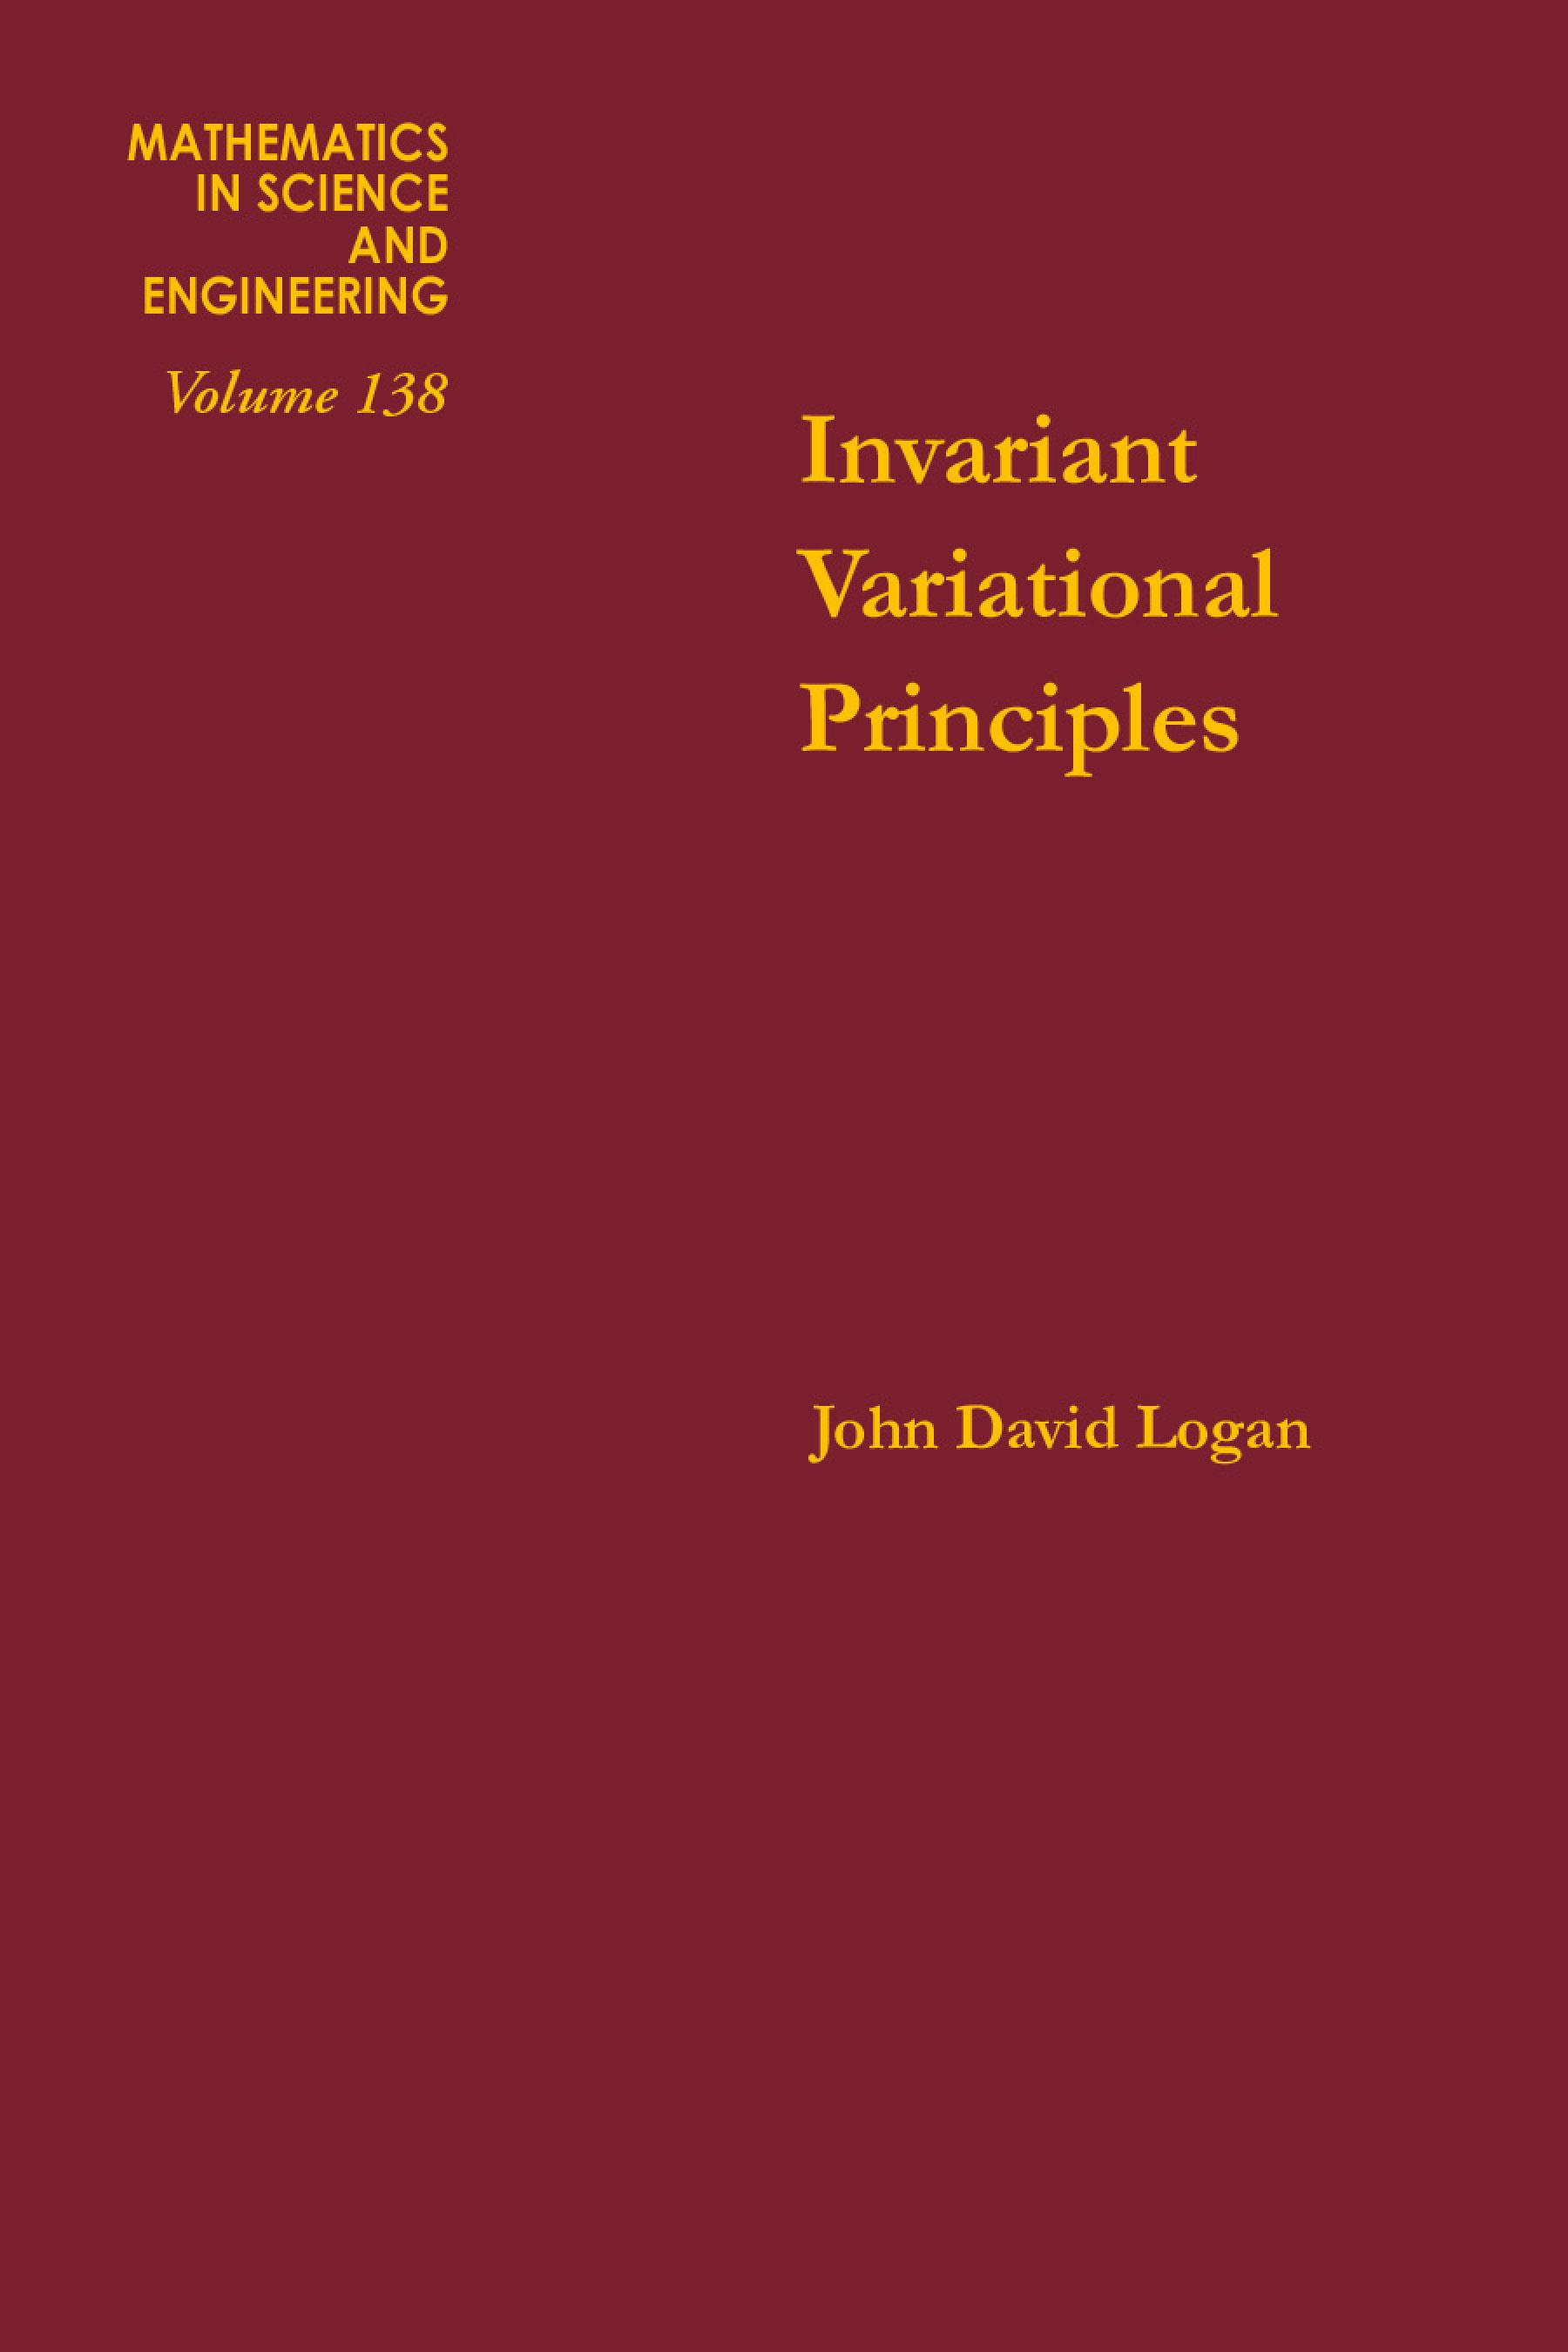 Invariant variational principles